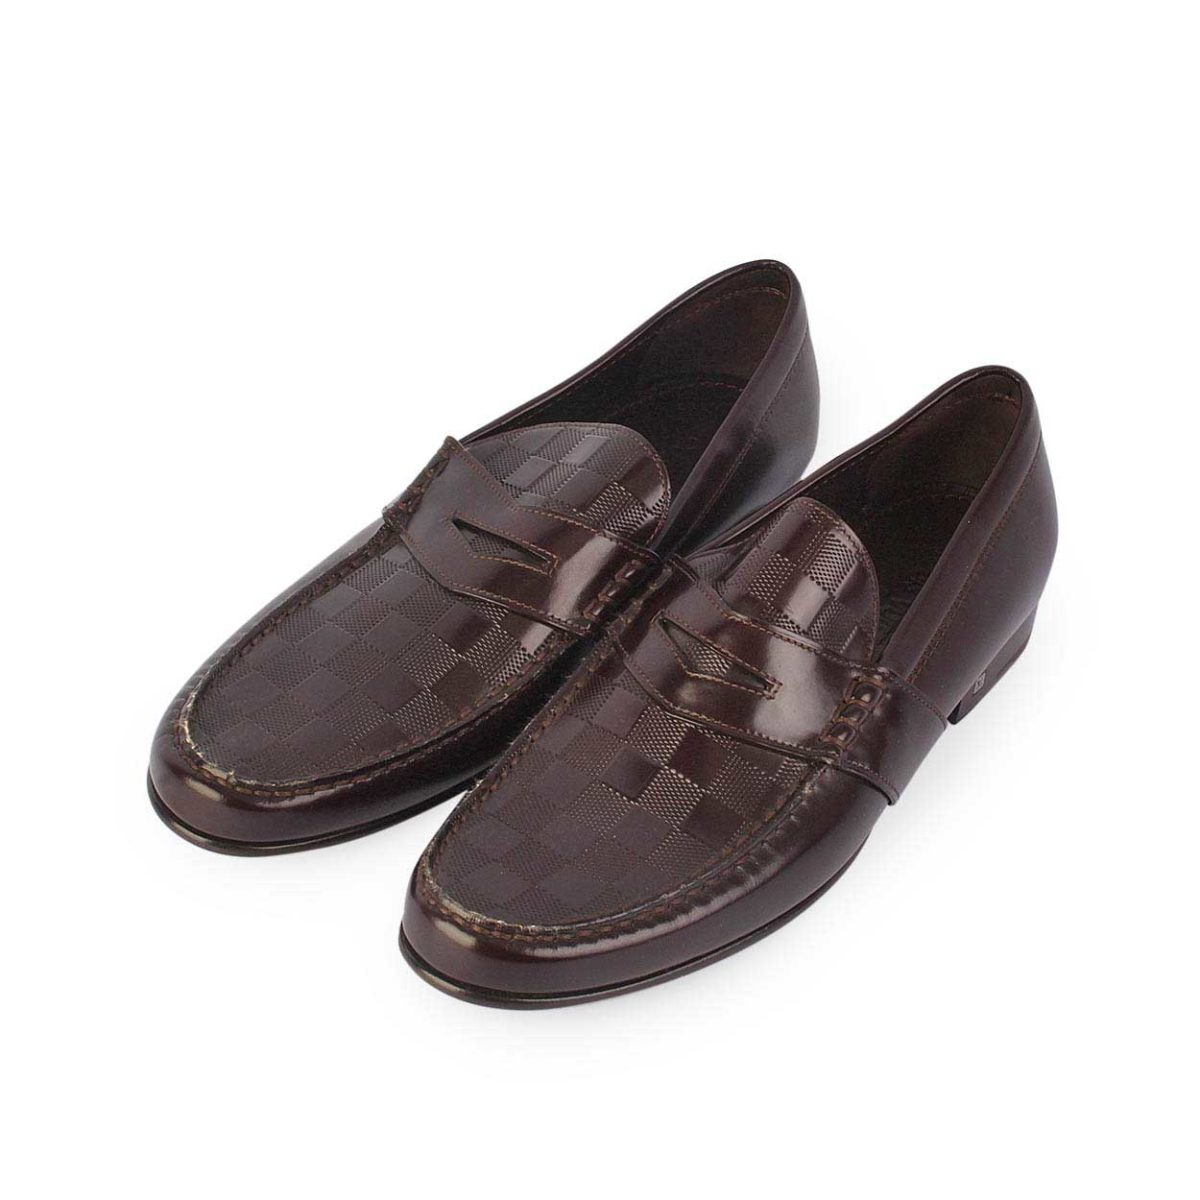 8f777c5a4196 Louis Vuitton Graduation Loafers Brown - S  42 (8) - NEW